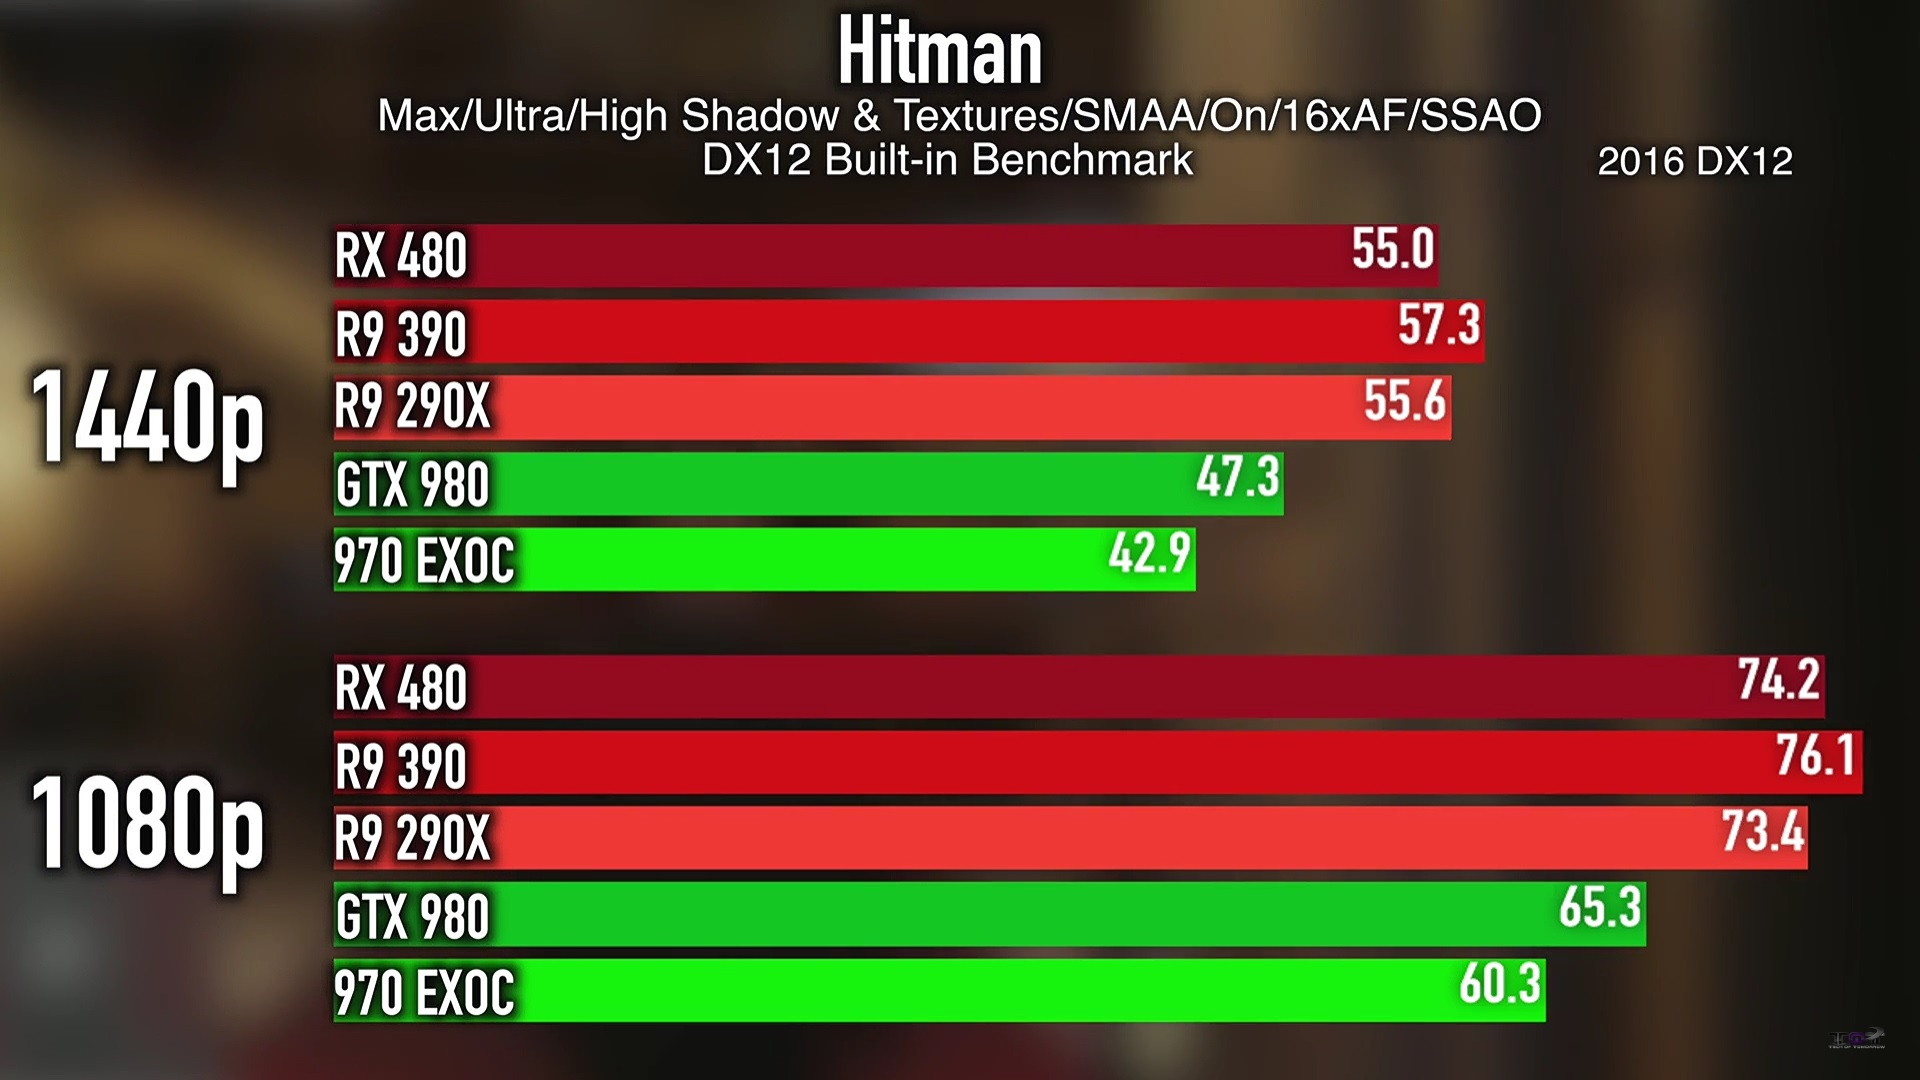 Vulkan and DirectX 12 expose the best the RX 480 has to offer